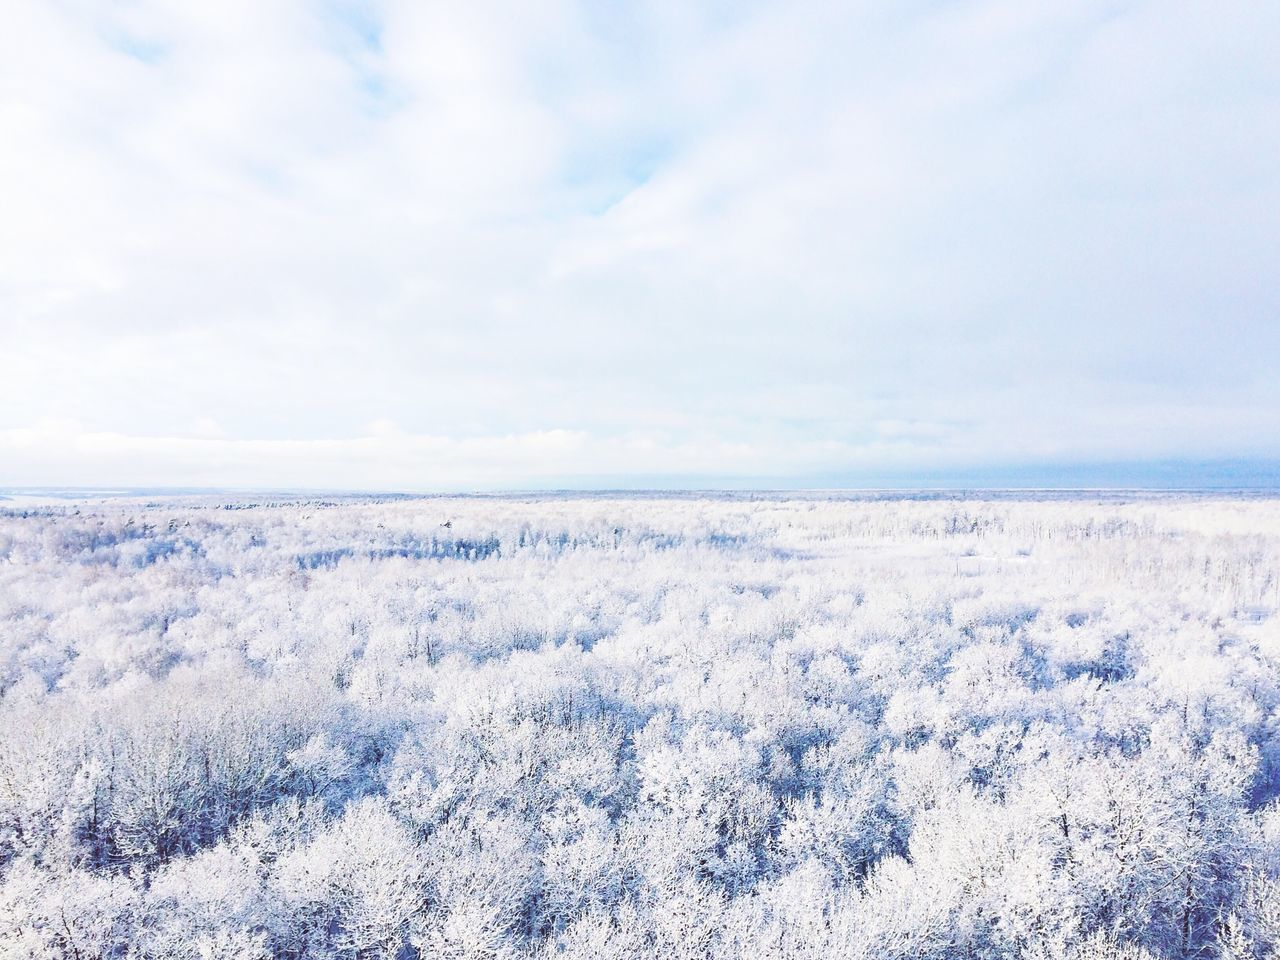 nature, sky, beauty in nature, tranquility, cloud - sky, scenics, weather, winter, tranquil scene, cold temperature, no people, snow, landscape, outdoors, day